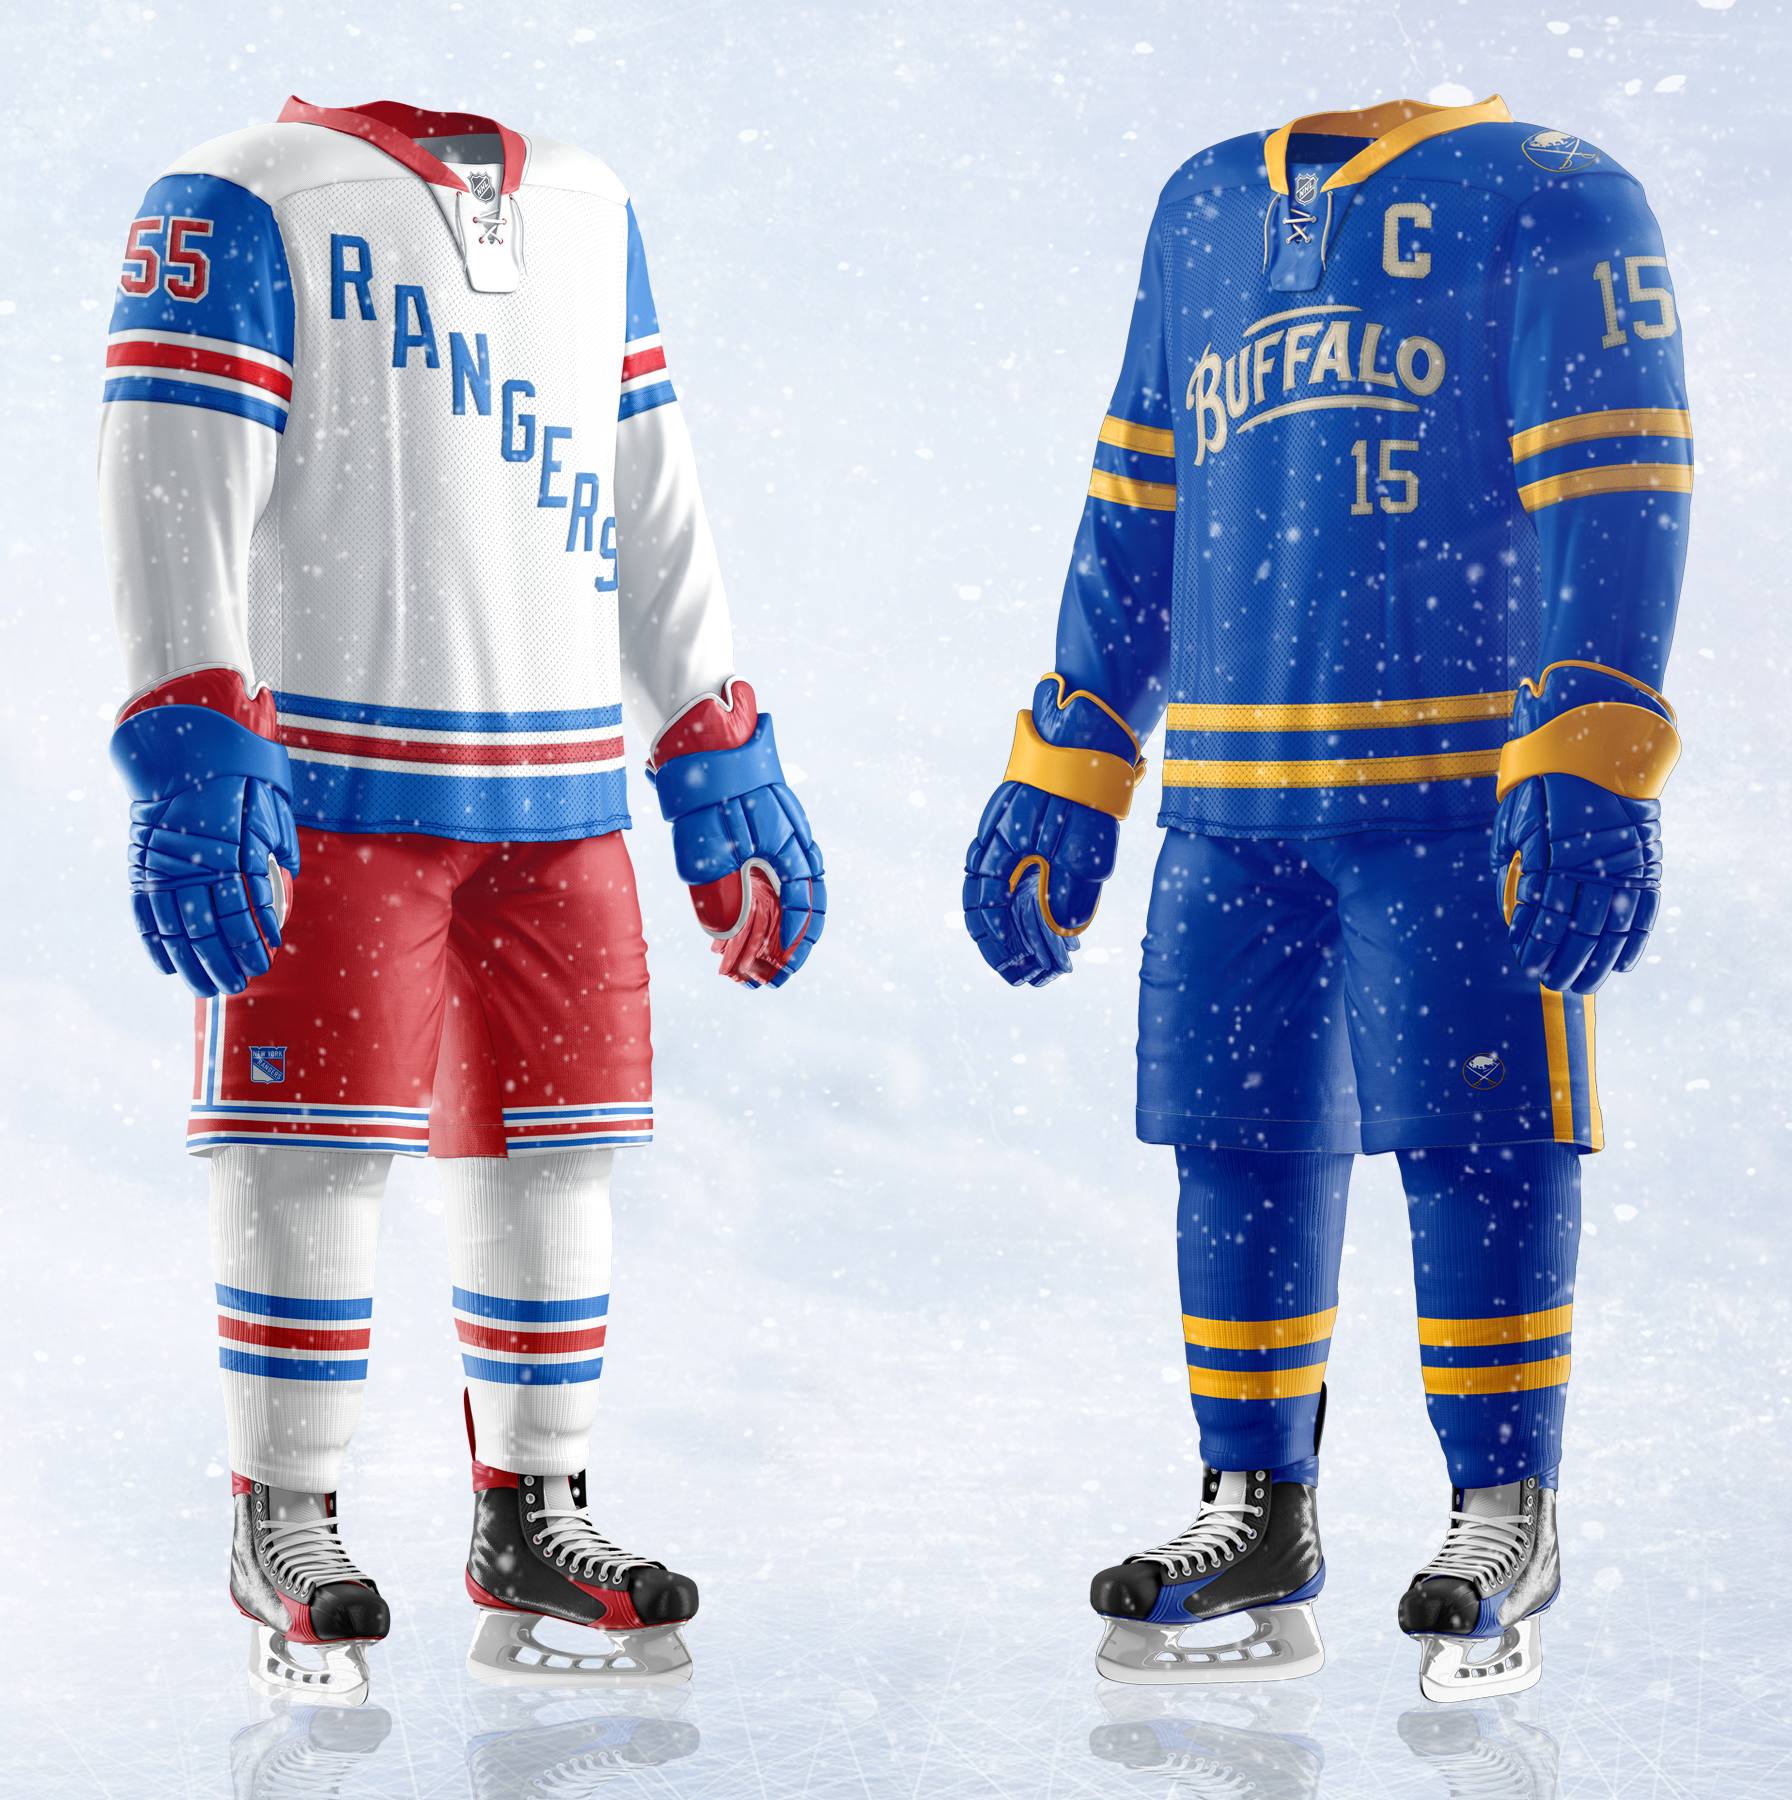 low priced 70efe 13ec6 2018 Winter Classic Jersey Concepts - Concepts - Chris ...